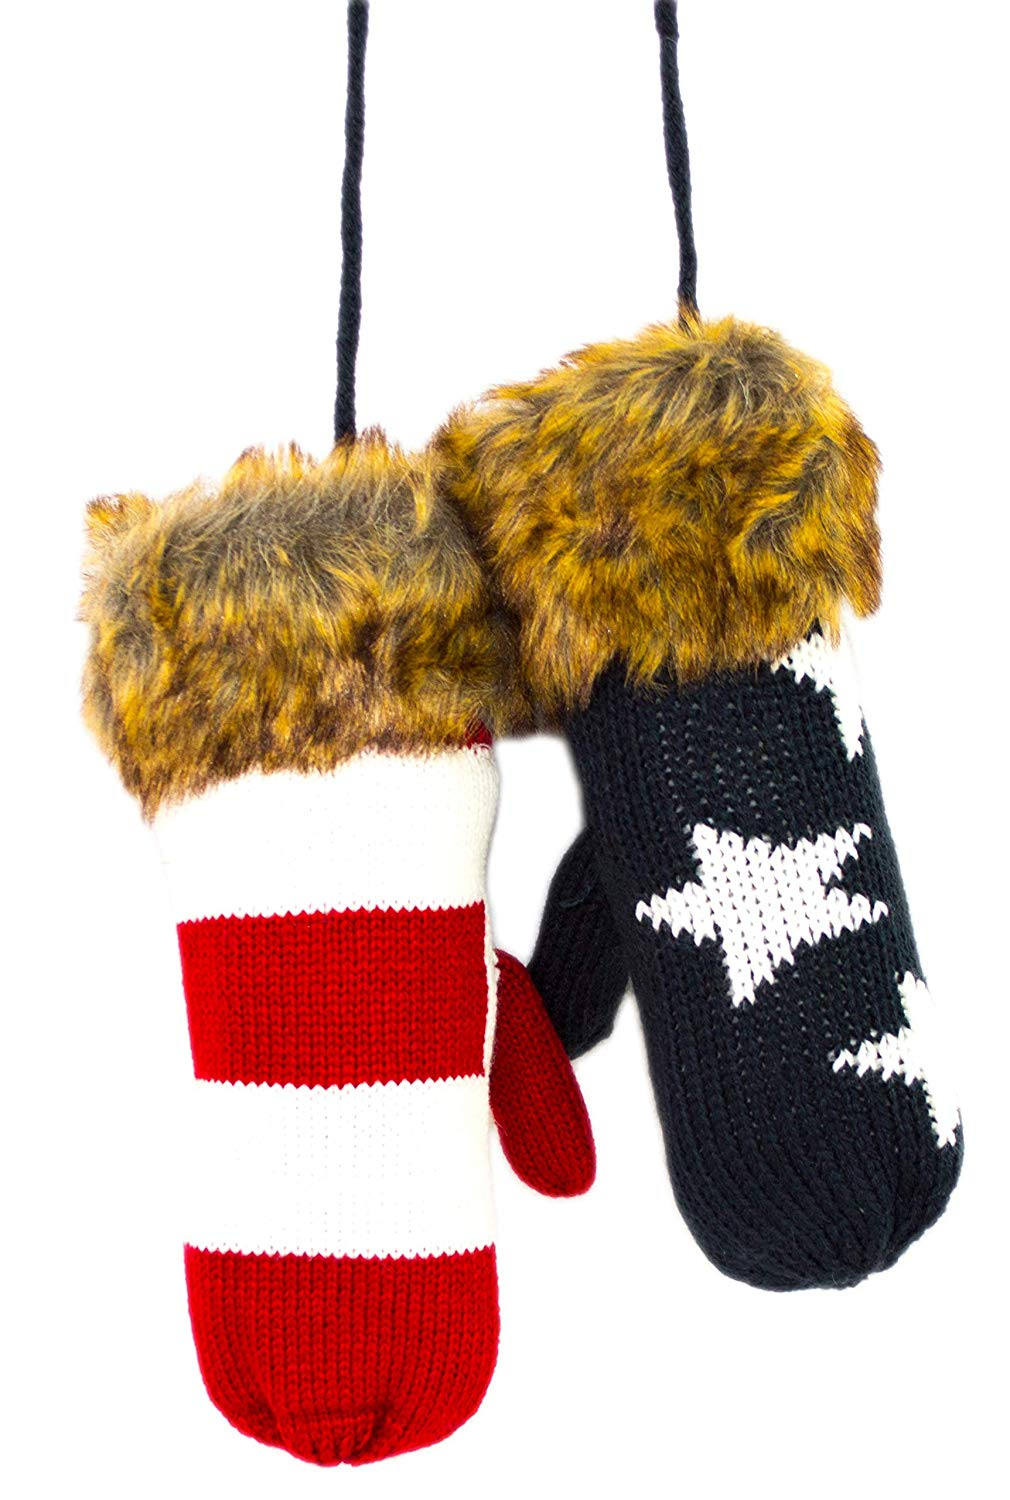 american flag warm knit mittens with string - the flag shirt